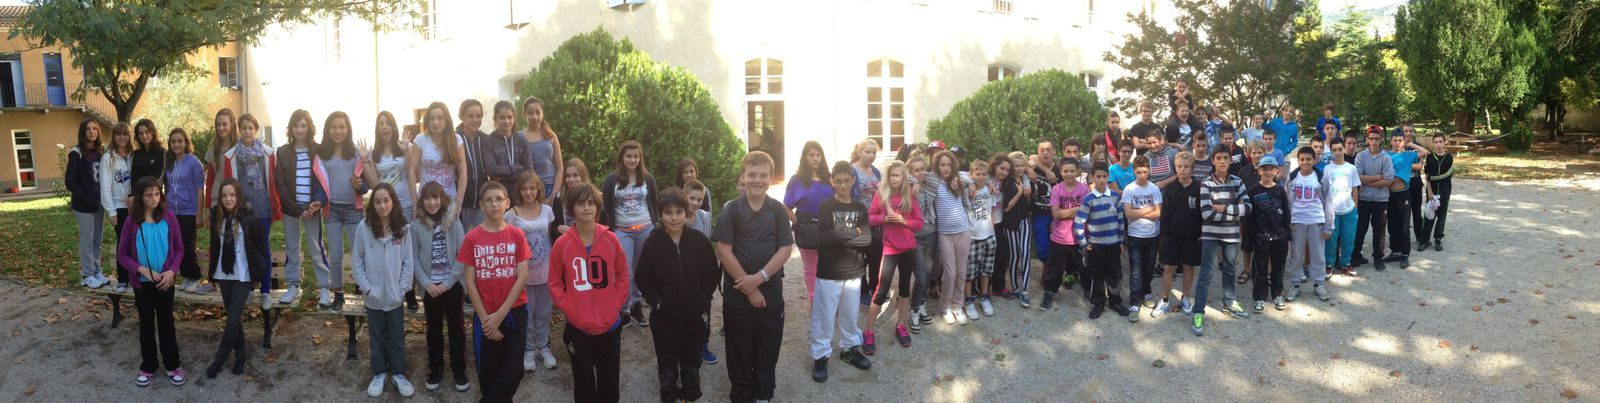 Les 3 classes de 5° se surpassent à Fontaine de Vaucluse !